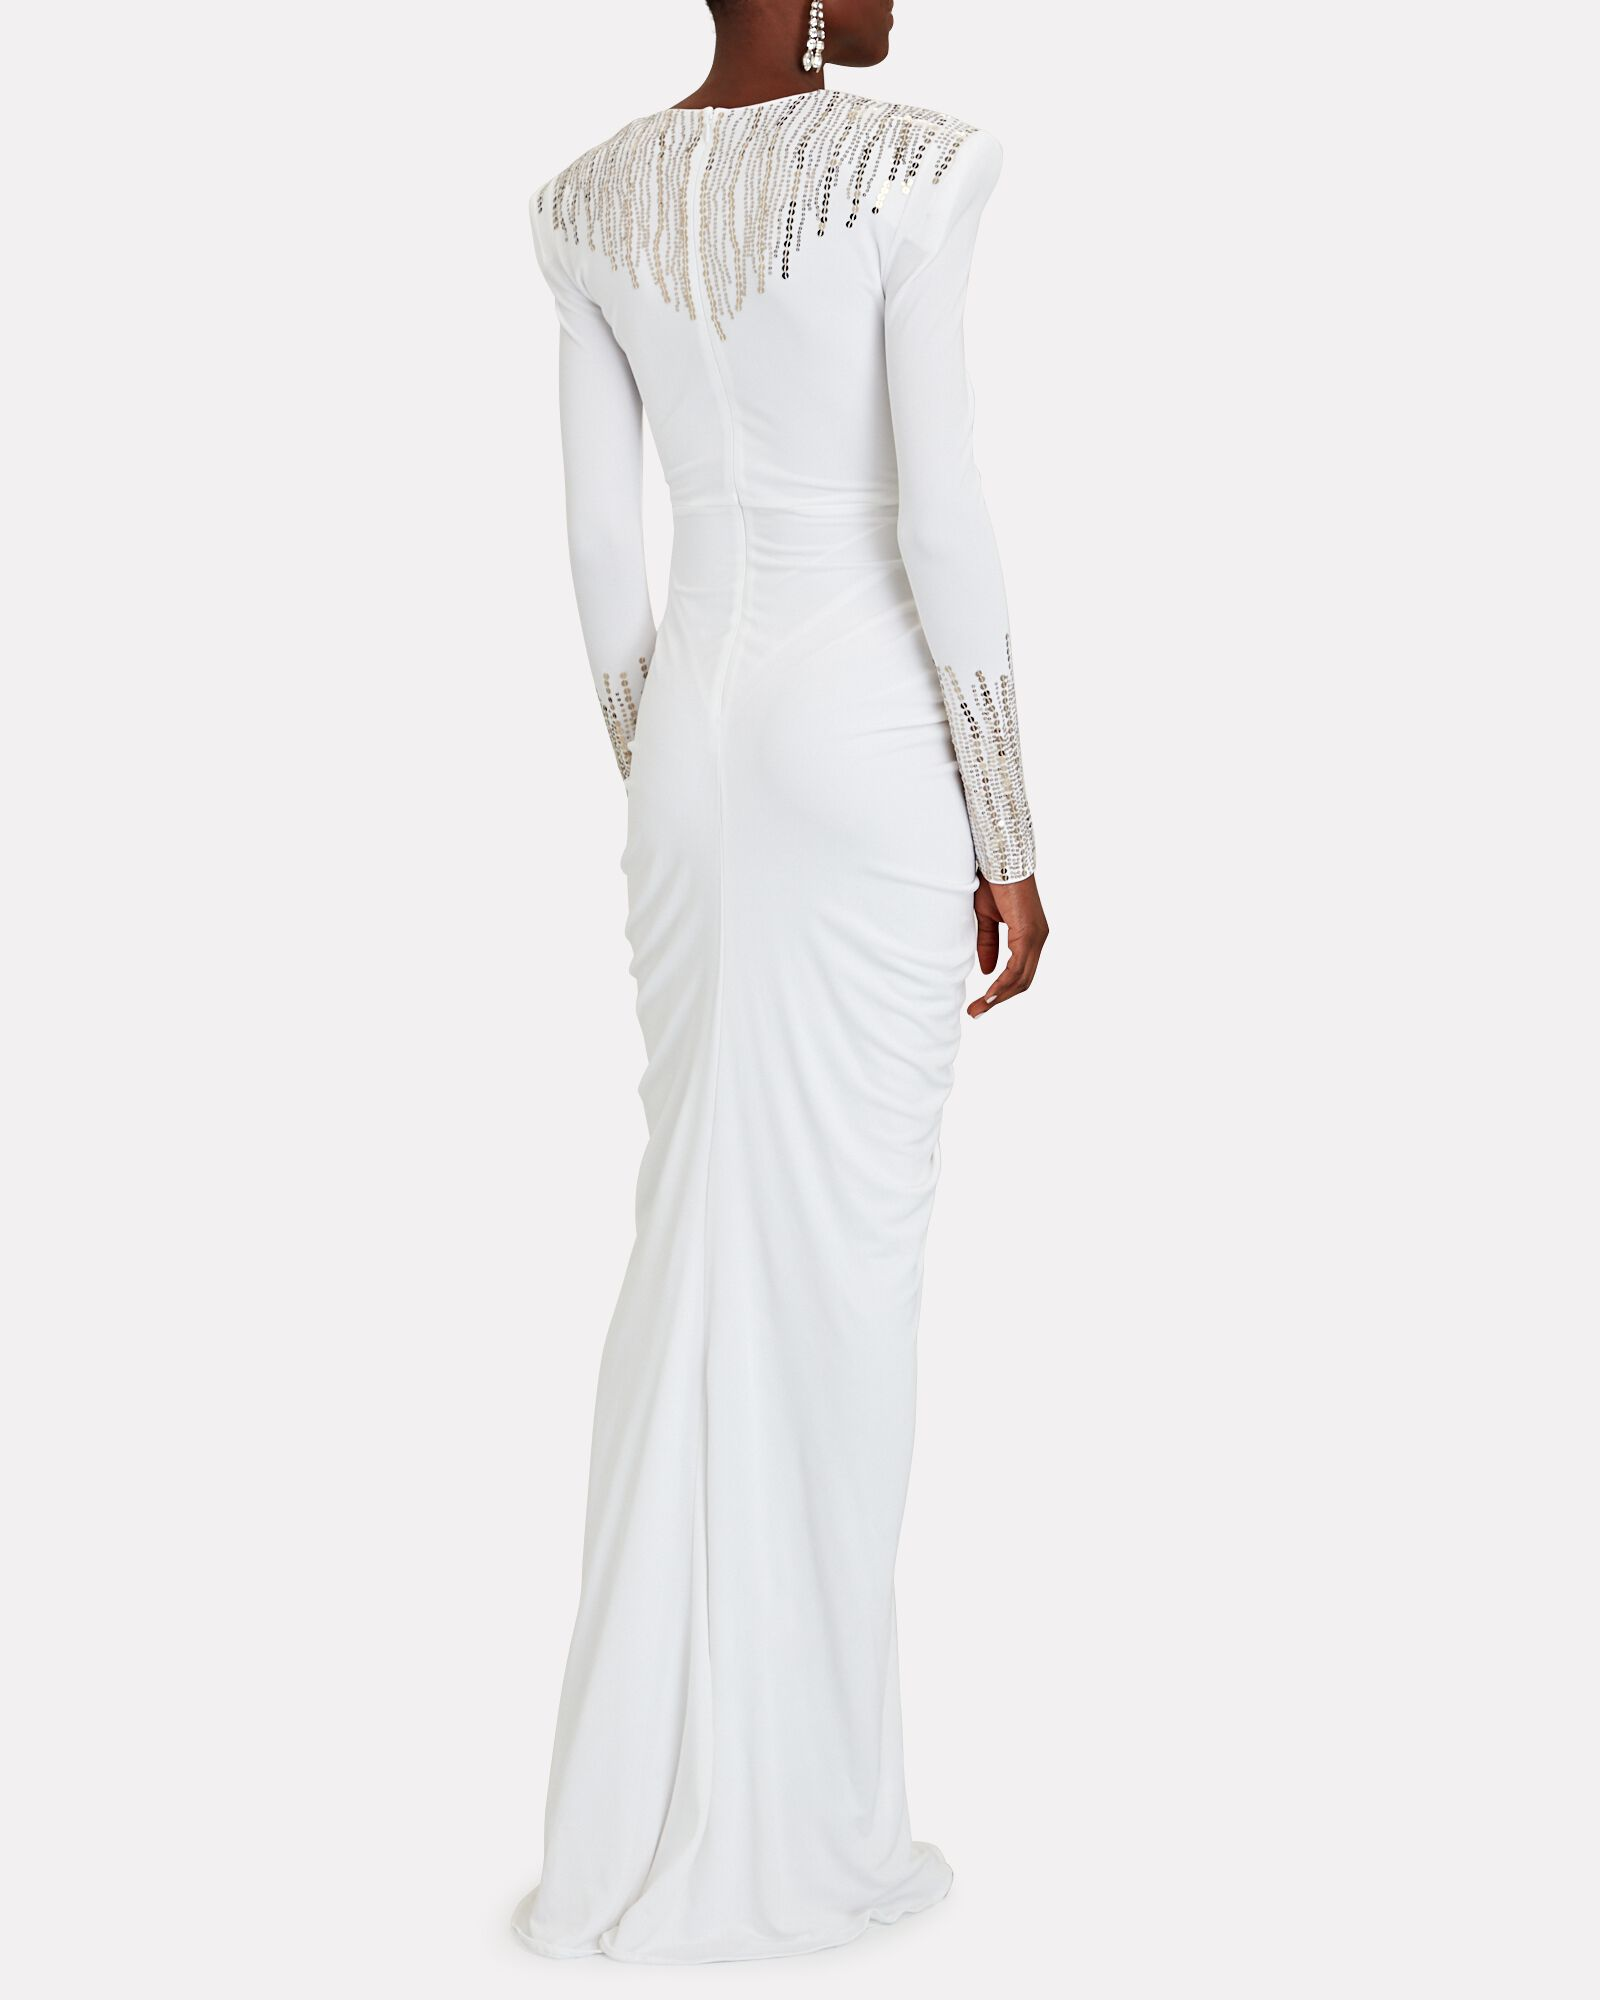 Sequined Jersey Cut-Out Gown, WHITE, hi-res